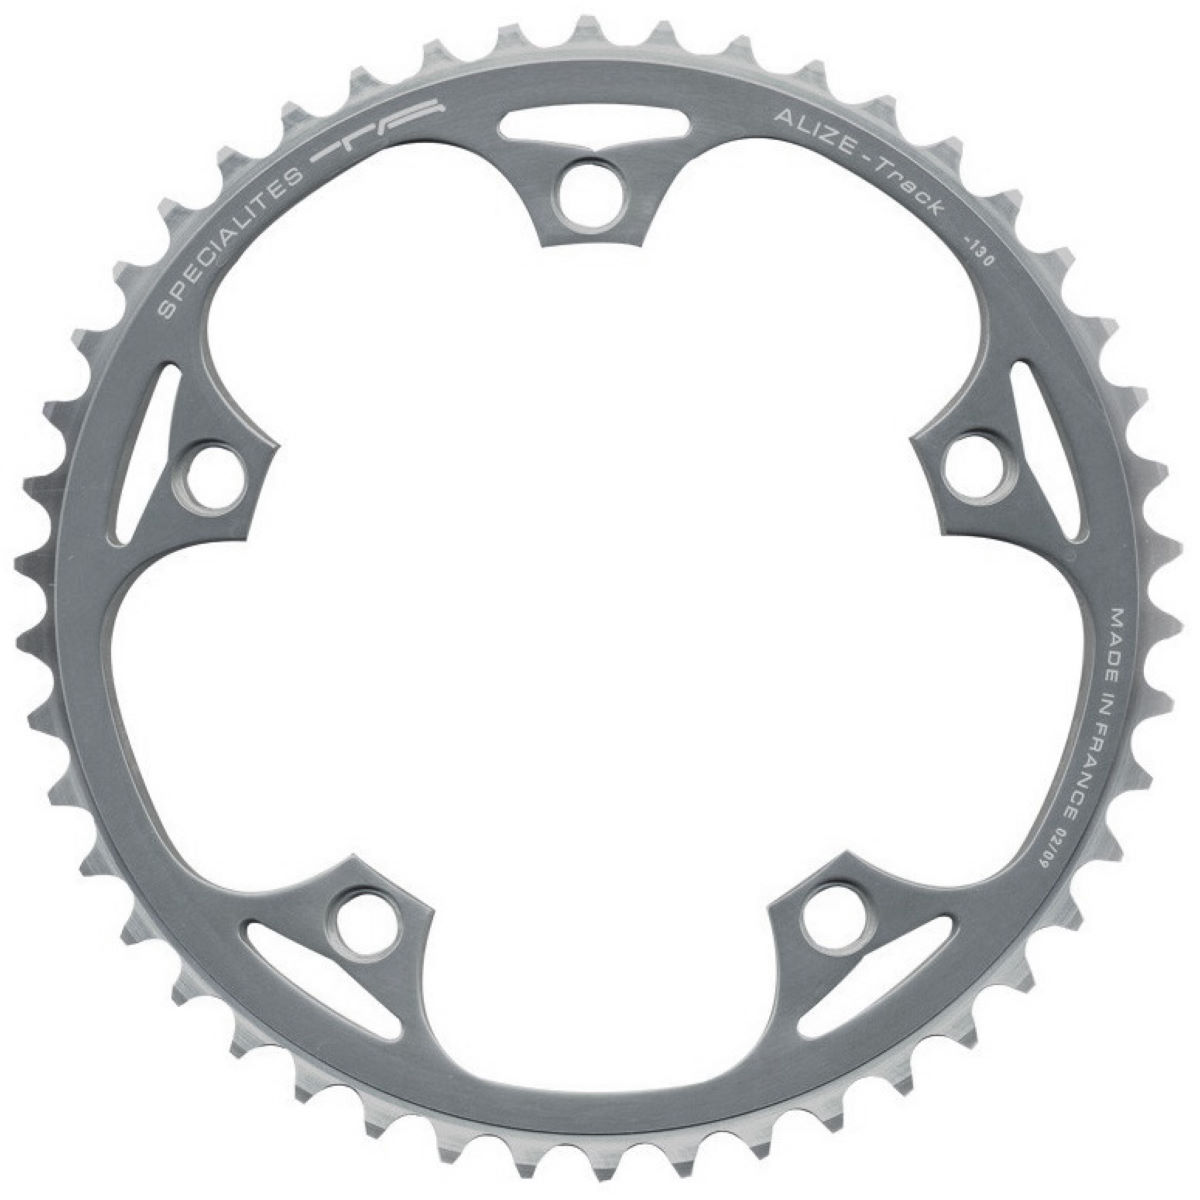 TA TA 130 PCD Shimano Track Outer Chainring (50-52T)   Chain Rings